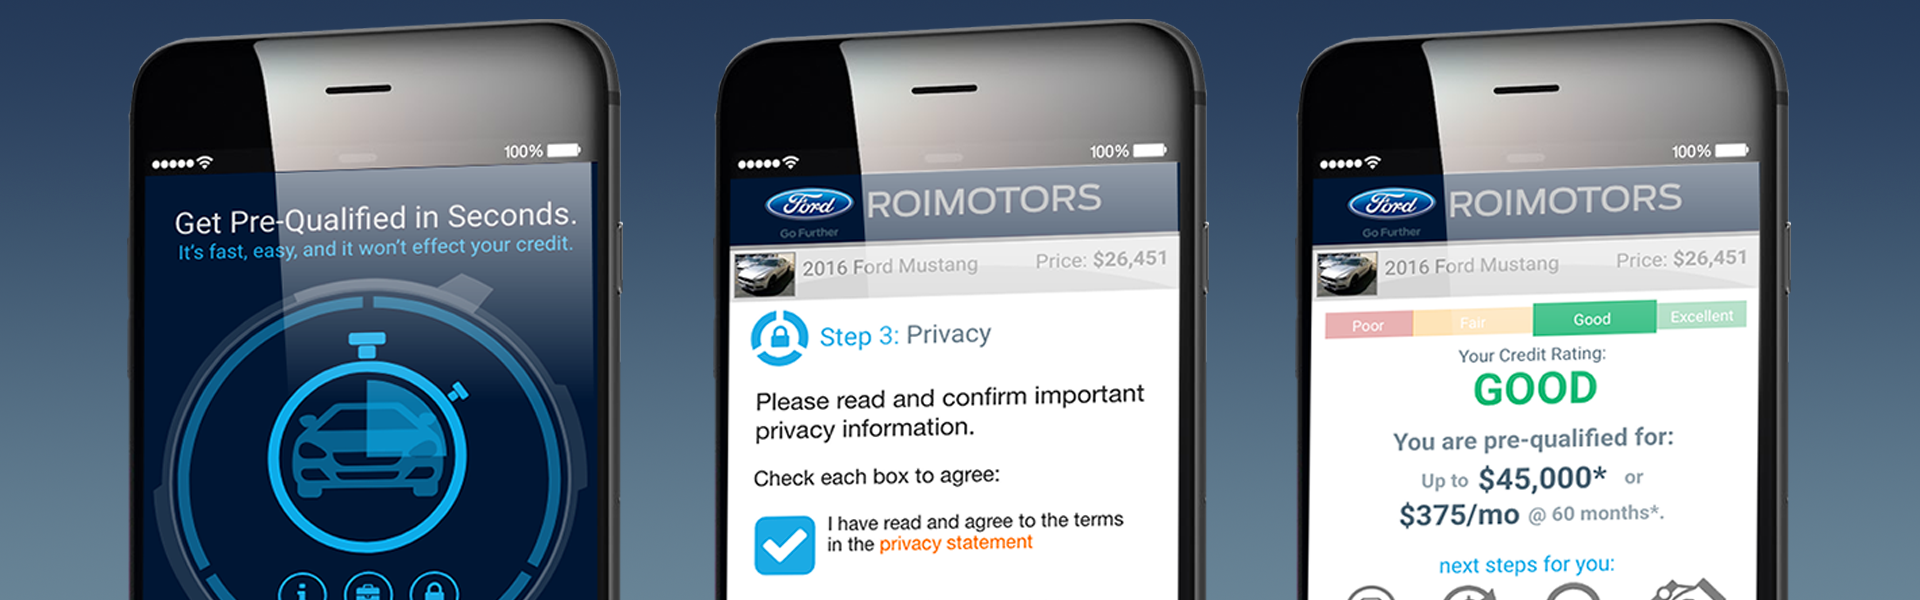 "In this particular design opportunity, I was tasked with creating a concept for allowing consumers to run through a quick, pre-qualification process housed on a dealership website. The experience itself need to feel ""app-like"" without the added overhead of requiring the end-user to actually download and install a device-specific app.[...]"